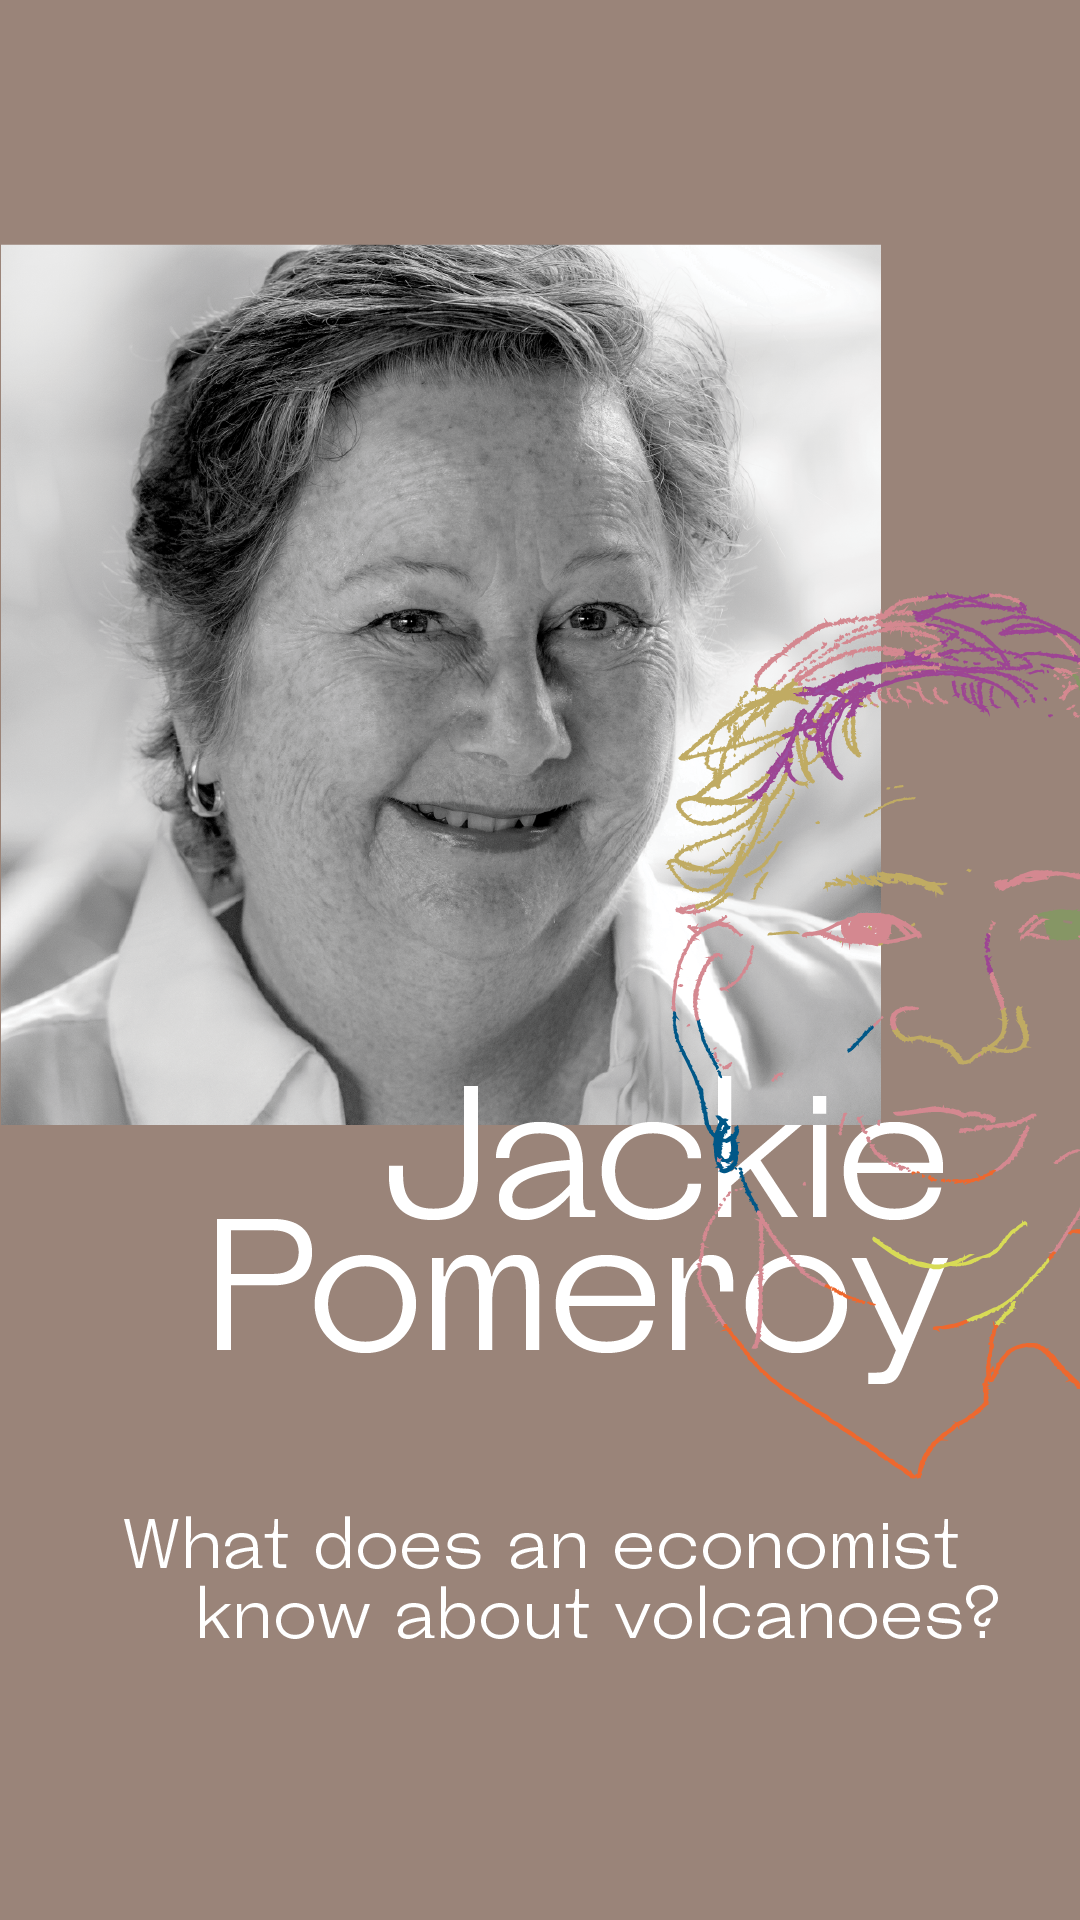 Jackie Pomeroy - Jackie Pomeroy was an applied microeconomist specializing in international trade when she arrived in Jakarta in 1990 with two suitcases and a one-year contract to work for the Indonesian Ministry of Trade. She worked there for six years (outlasting three Ministers), became a domestic trade specialist, and then went to work for the World Bank. She survived the Asian Financial Crisis, tanks on Jakarta streets during Reformasi, and the referendum in East Timor. She's still here, but has mostly traded in top levels of government for farmers, and focuses on rural livelihoods around the region. She has been learning a LOT about volcanoes since Gunung Agung started erupting in her backyard in September 2017.